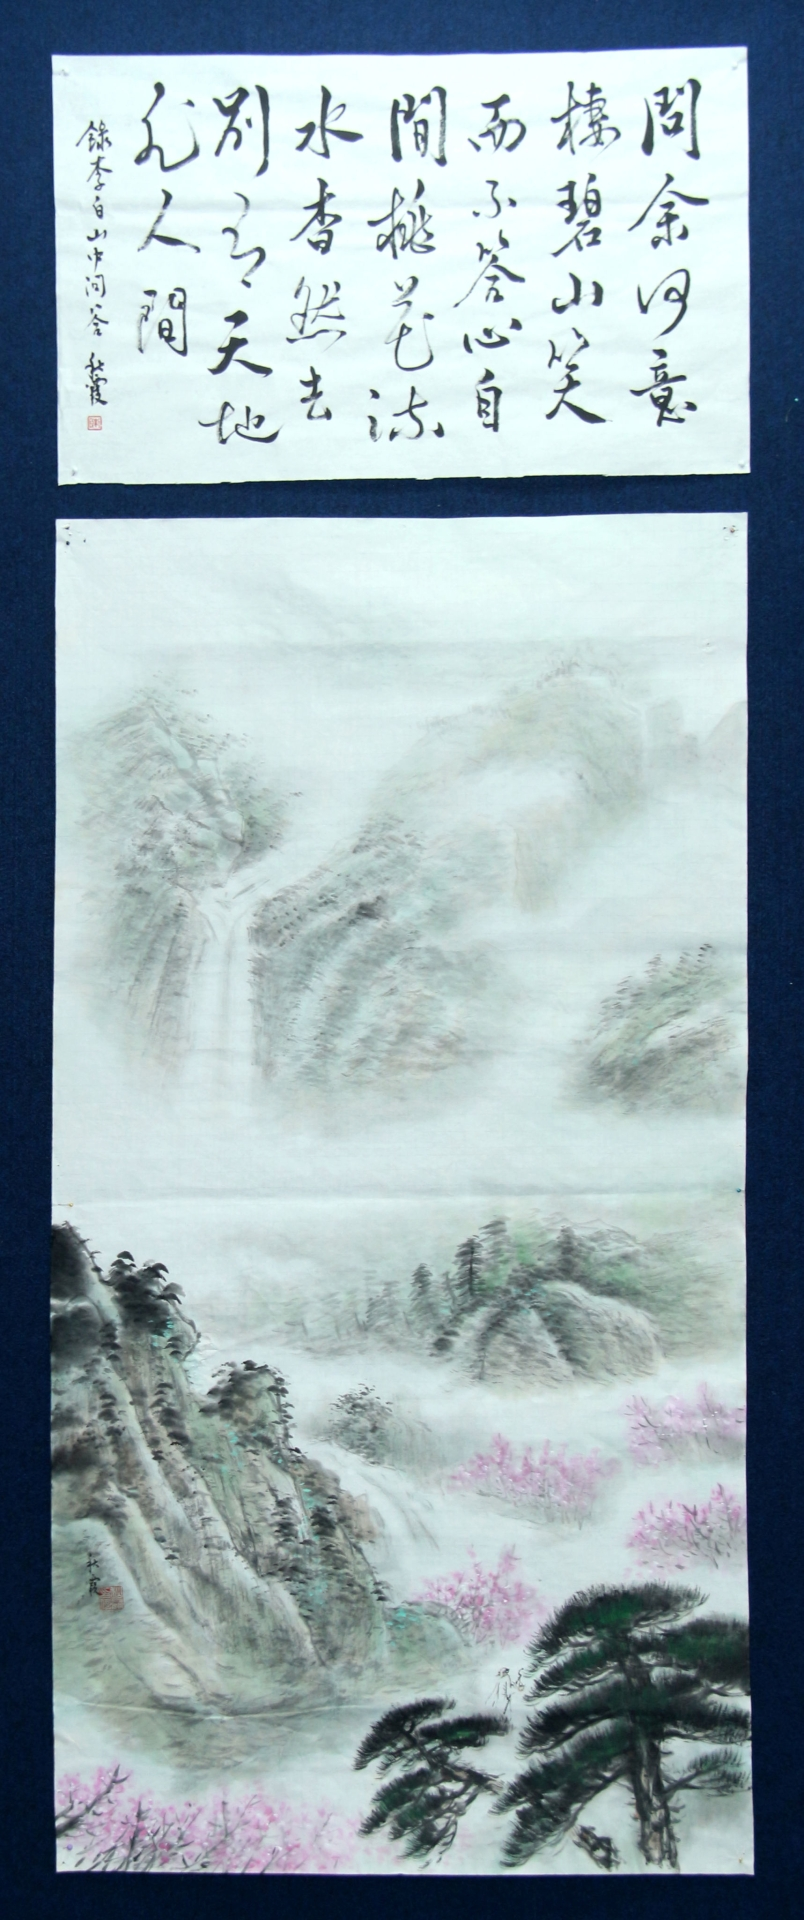 A poem by famous Tang dynasty poet Li Bai depicted in both calligraphy and Chinese brush painting. Photo: Bo Dah Yung